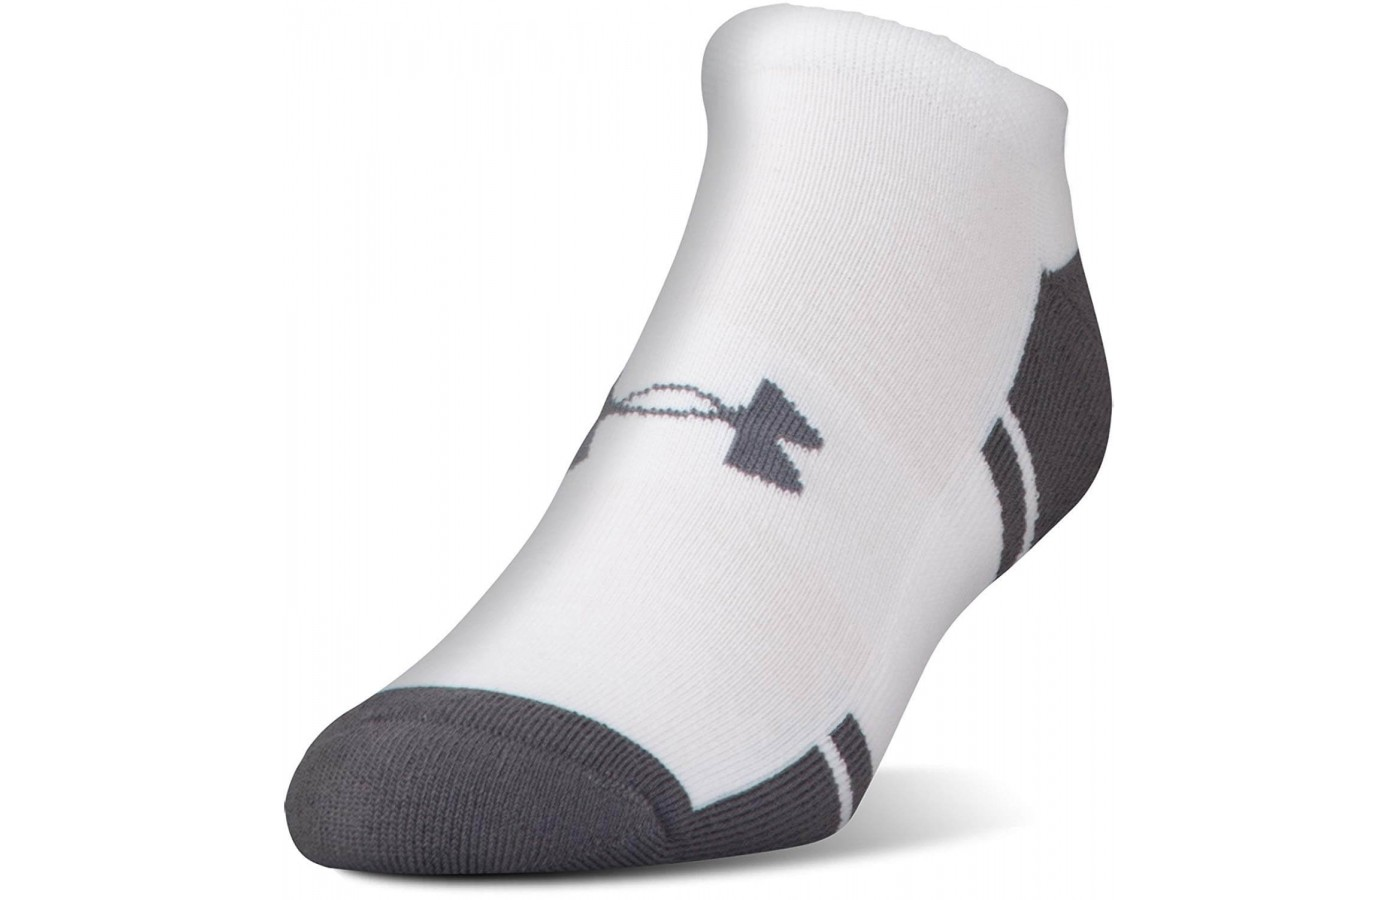 Under Armour Resistor 3.0 No Show Socks angle